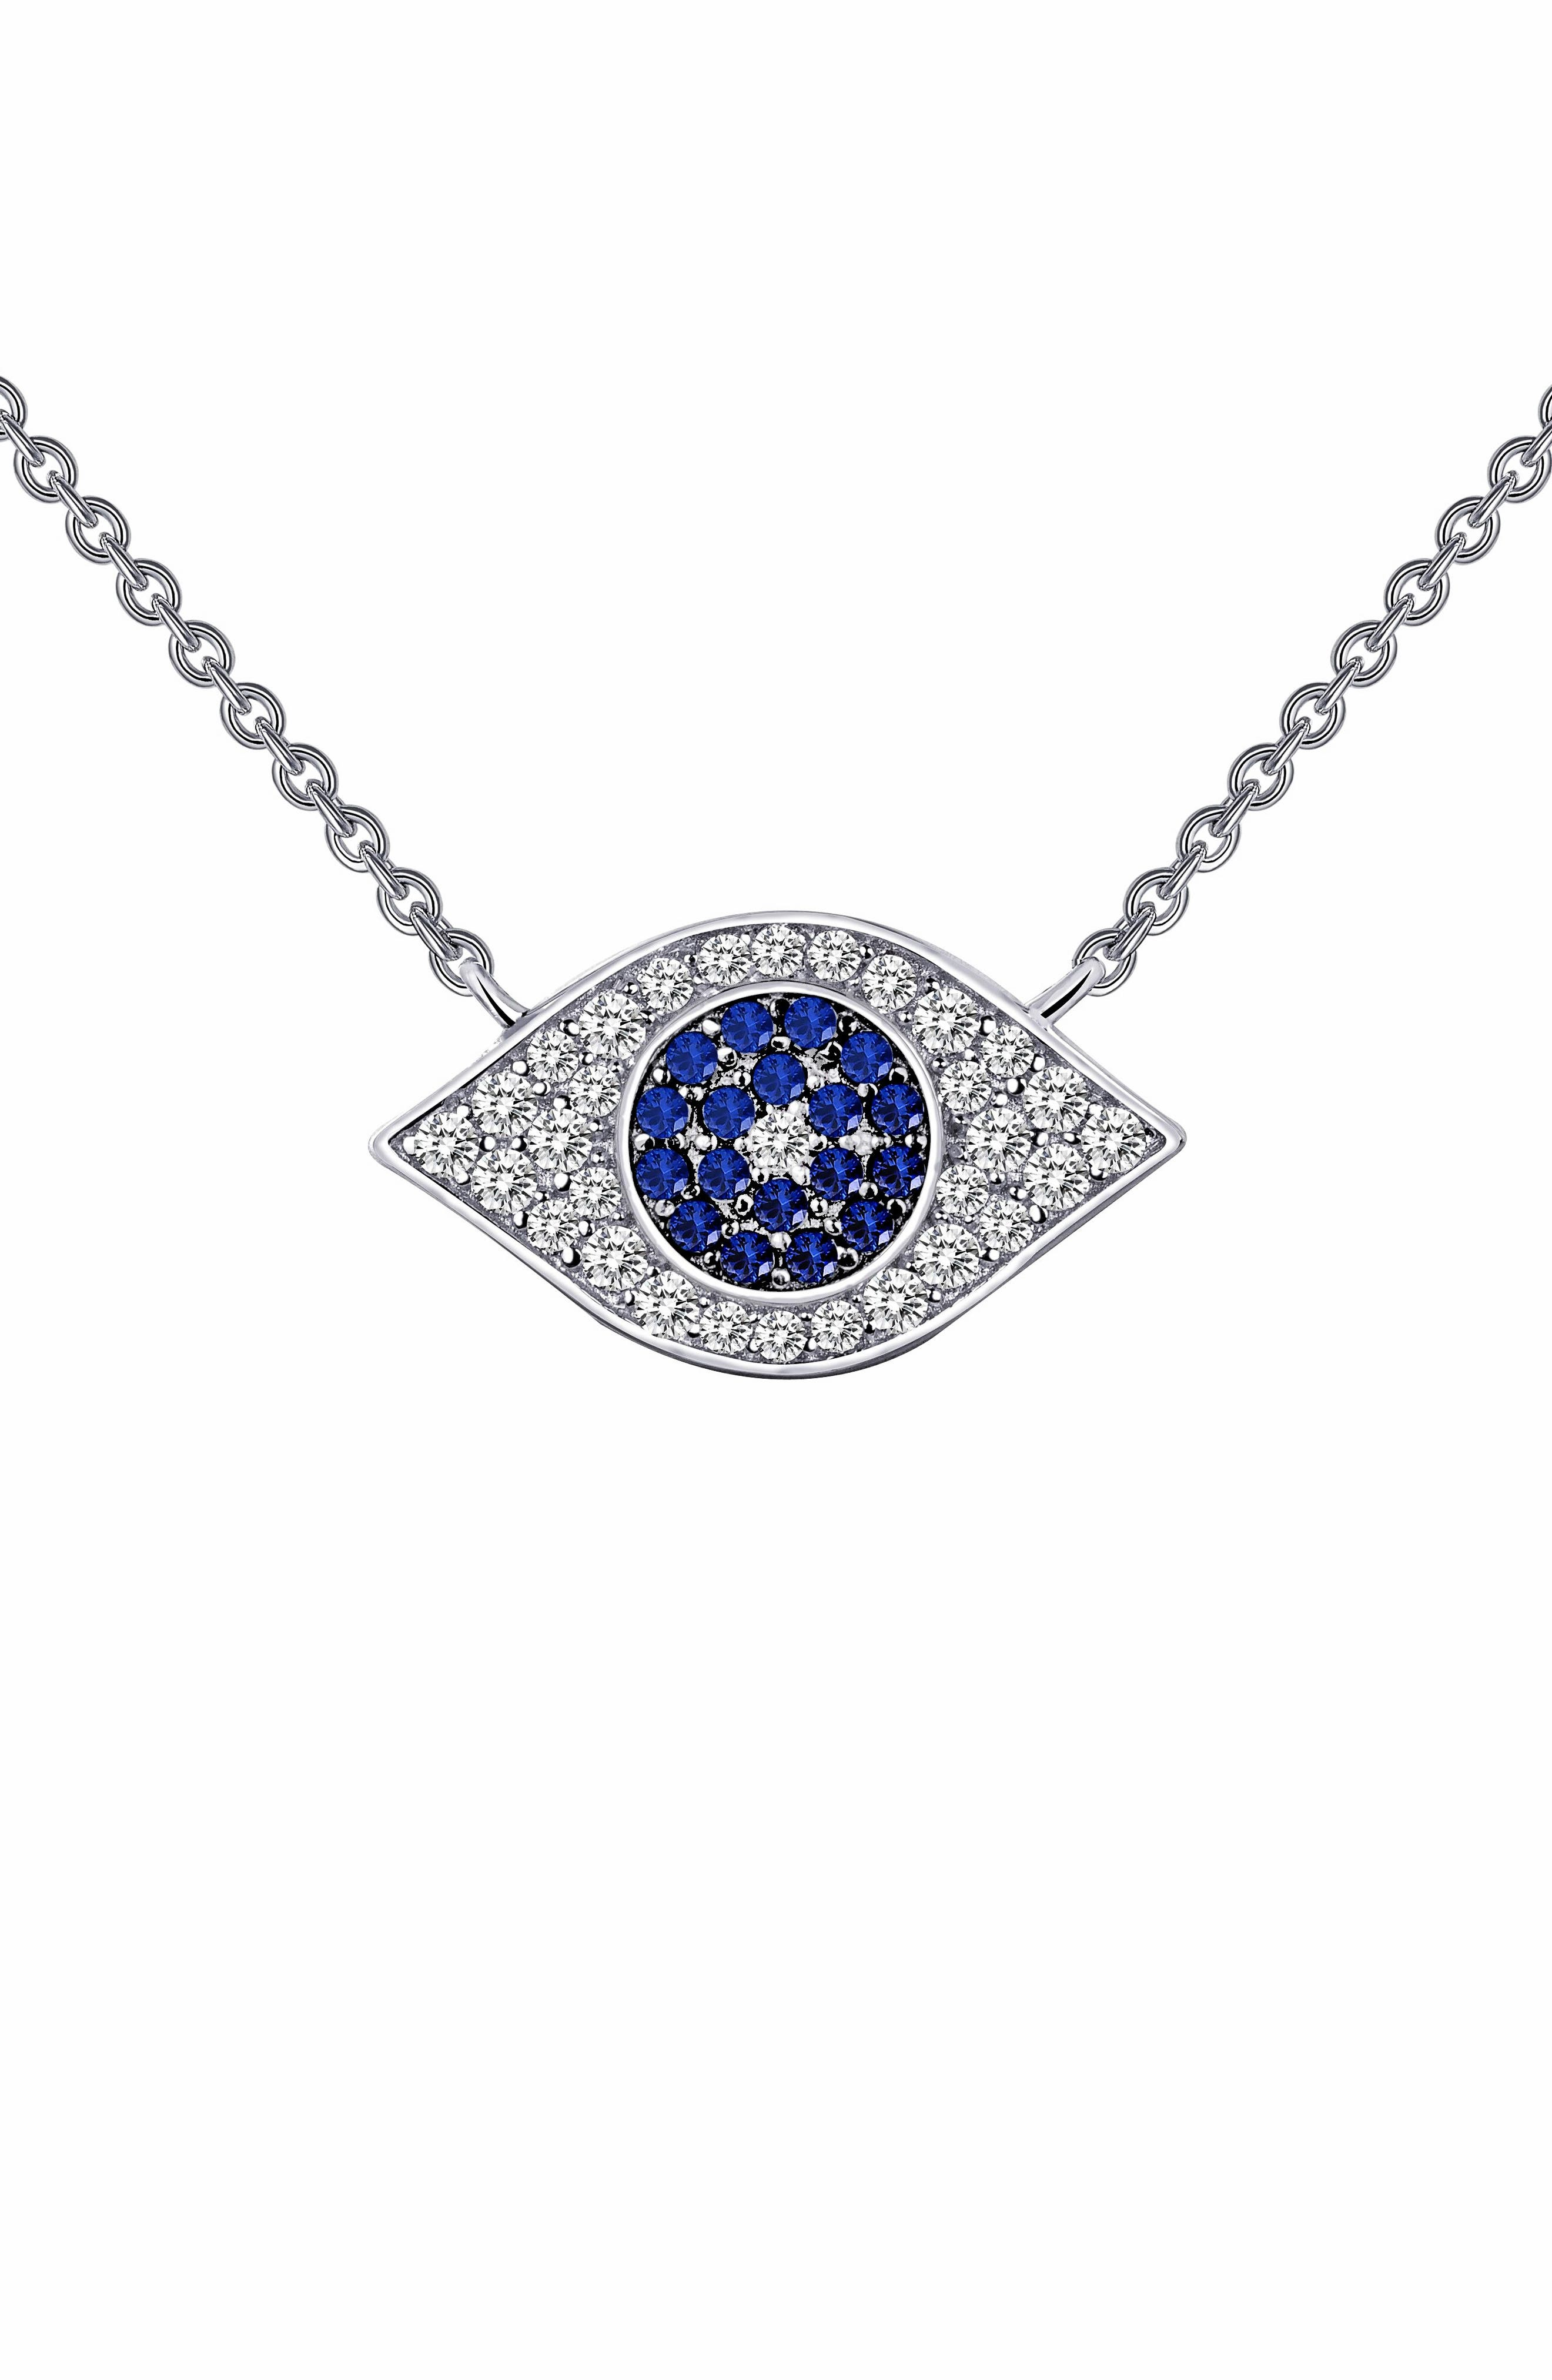 Simulated Diamond Amulet Pendant Necklace,                             Main thumbnail 1, color,                             Sapphire / Silver